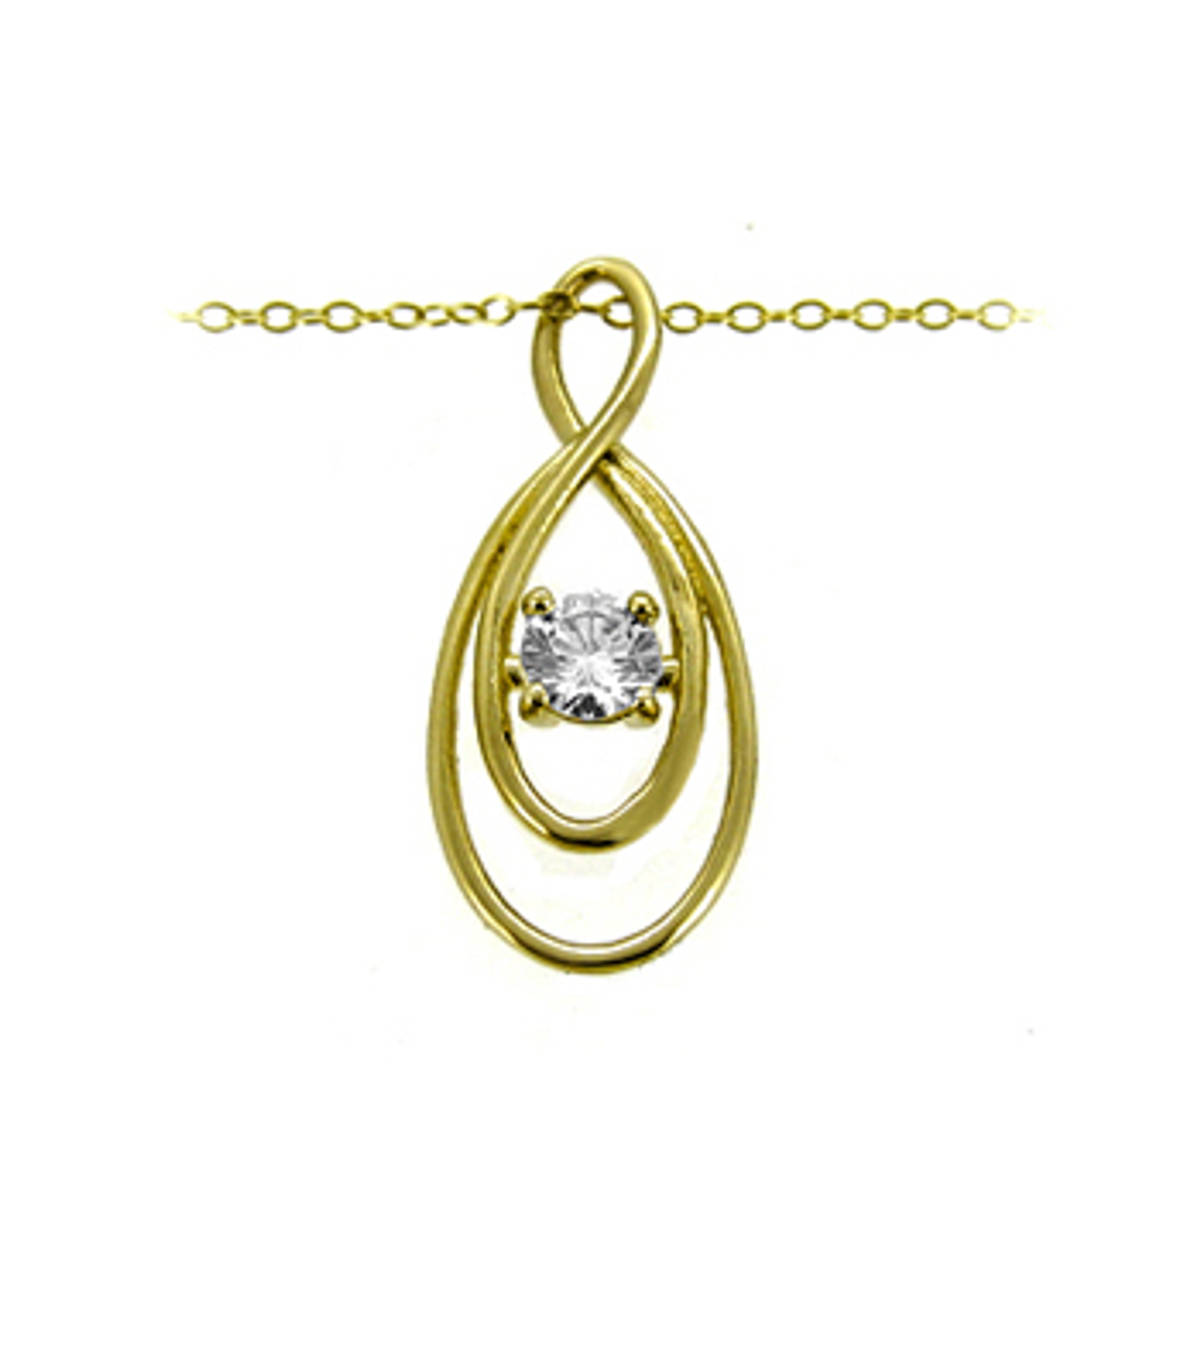 """9k yellow gold CZ pendant on 9k yellow gold 18"""" chain Metal: 9k yellow gold 9k yellow gold 18"""" chain Length  2.7cm  Width  1.1cm Made in Ireland"""